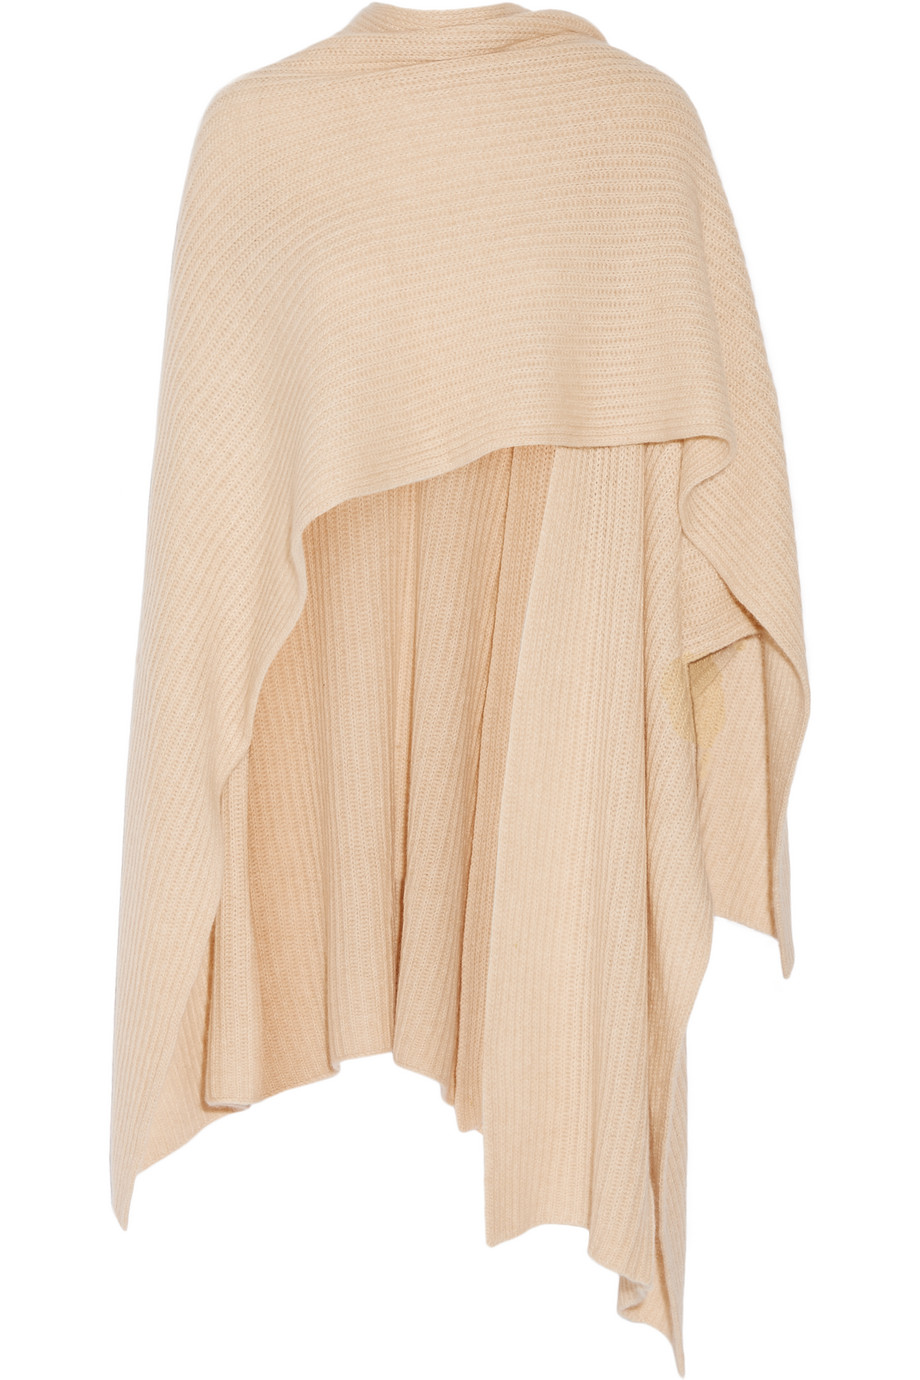 Ribbed Cashmere Wrap, Madeleine Thompson, Beige, Women's